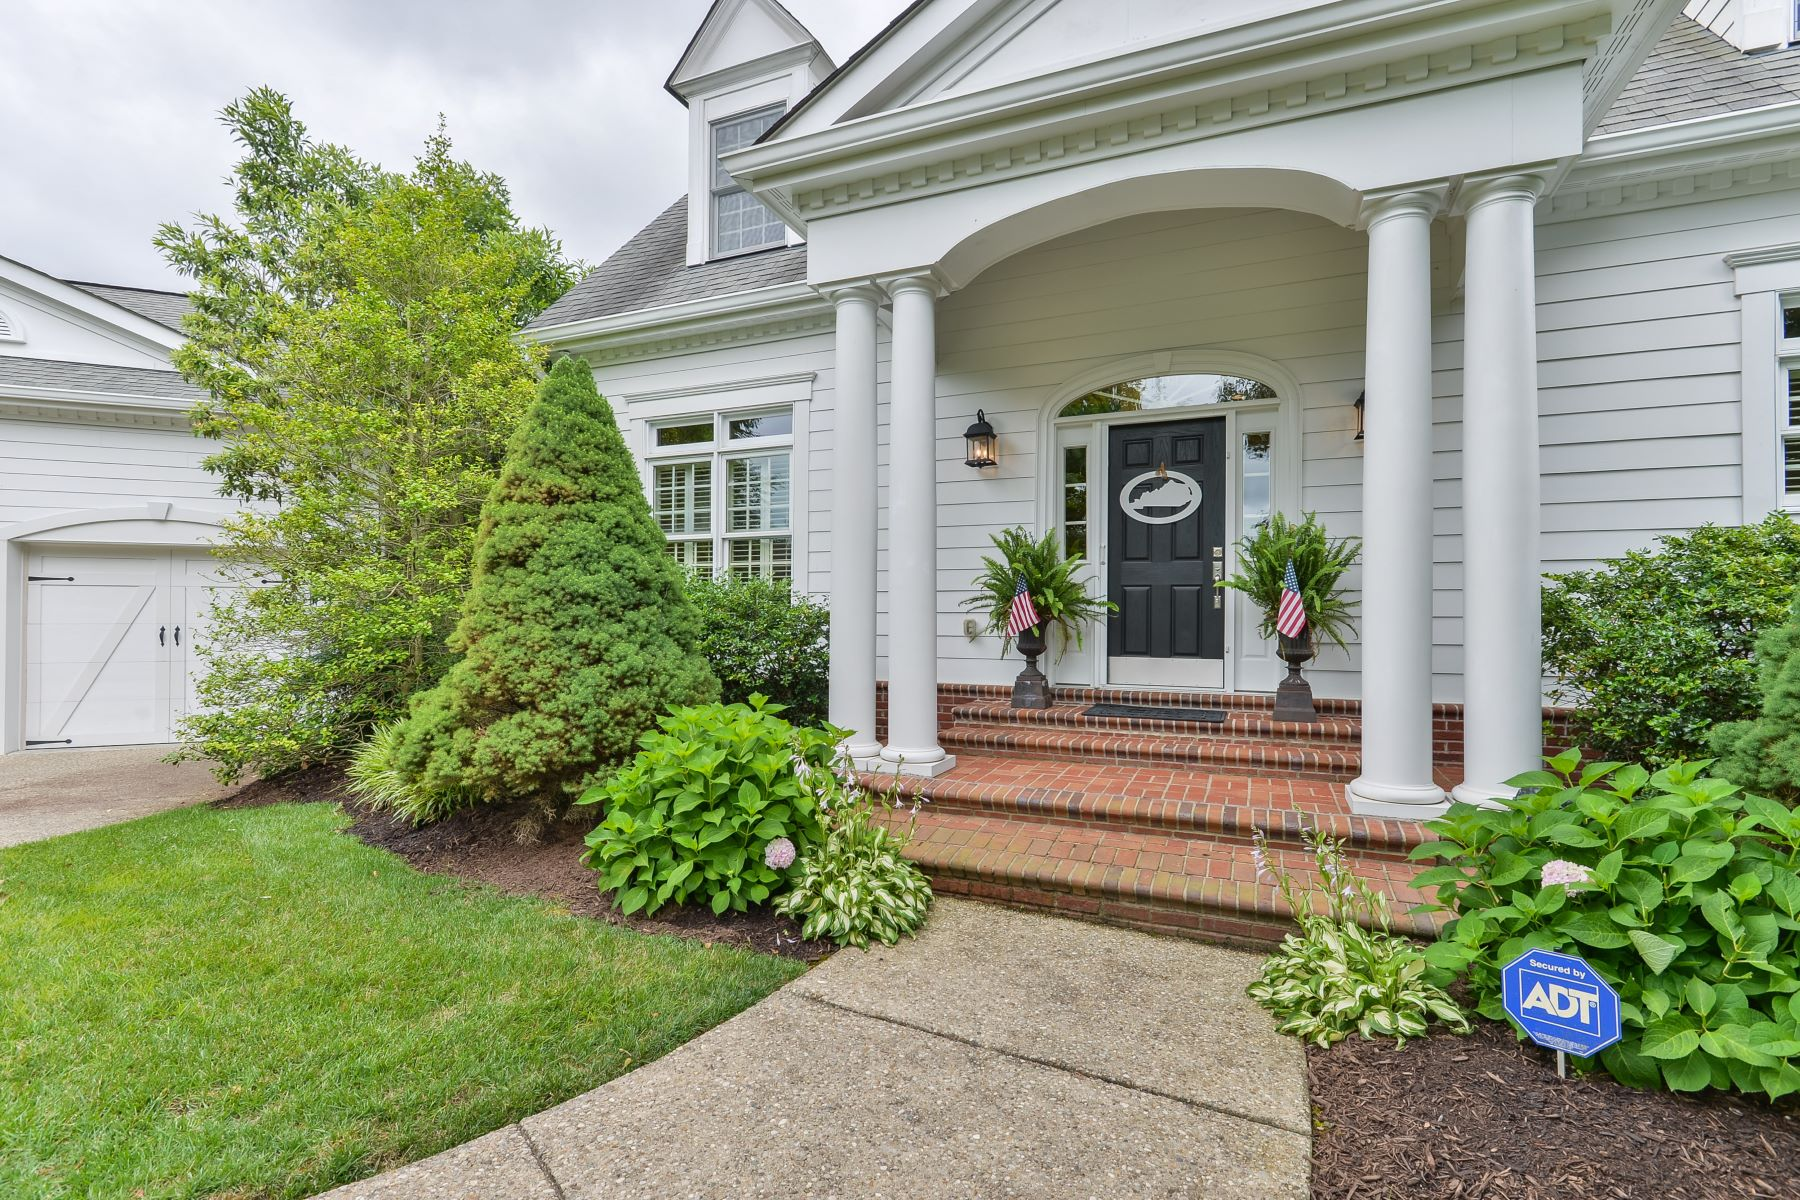 Additional photo for property listing at 6900 Brown Court  Crestwood, Kentucky 40014 United States